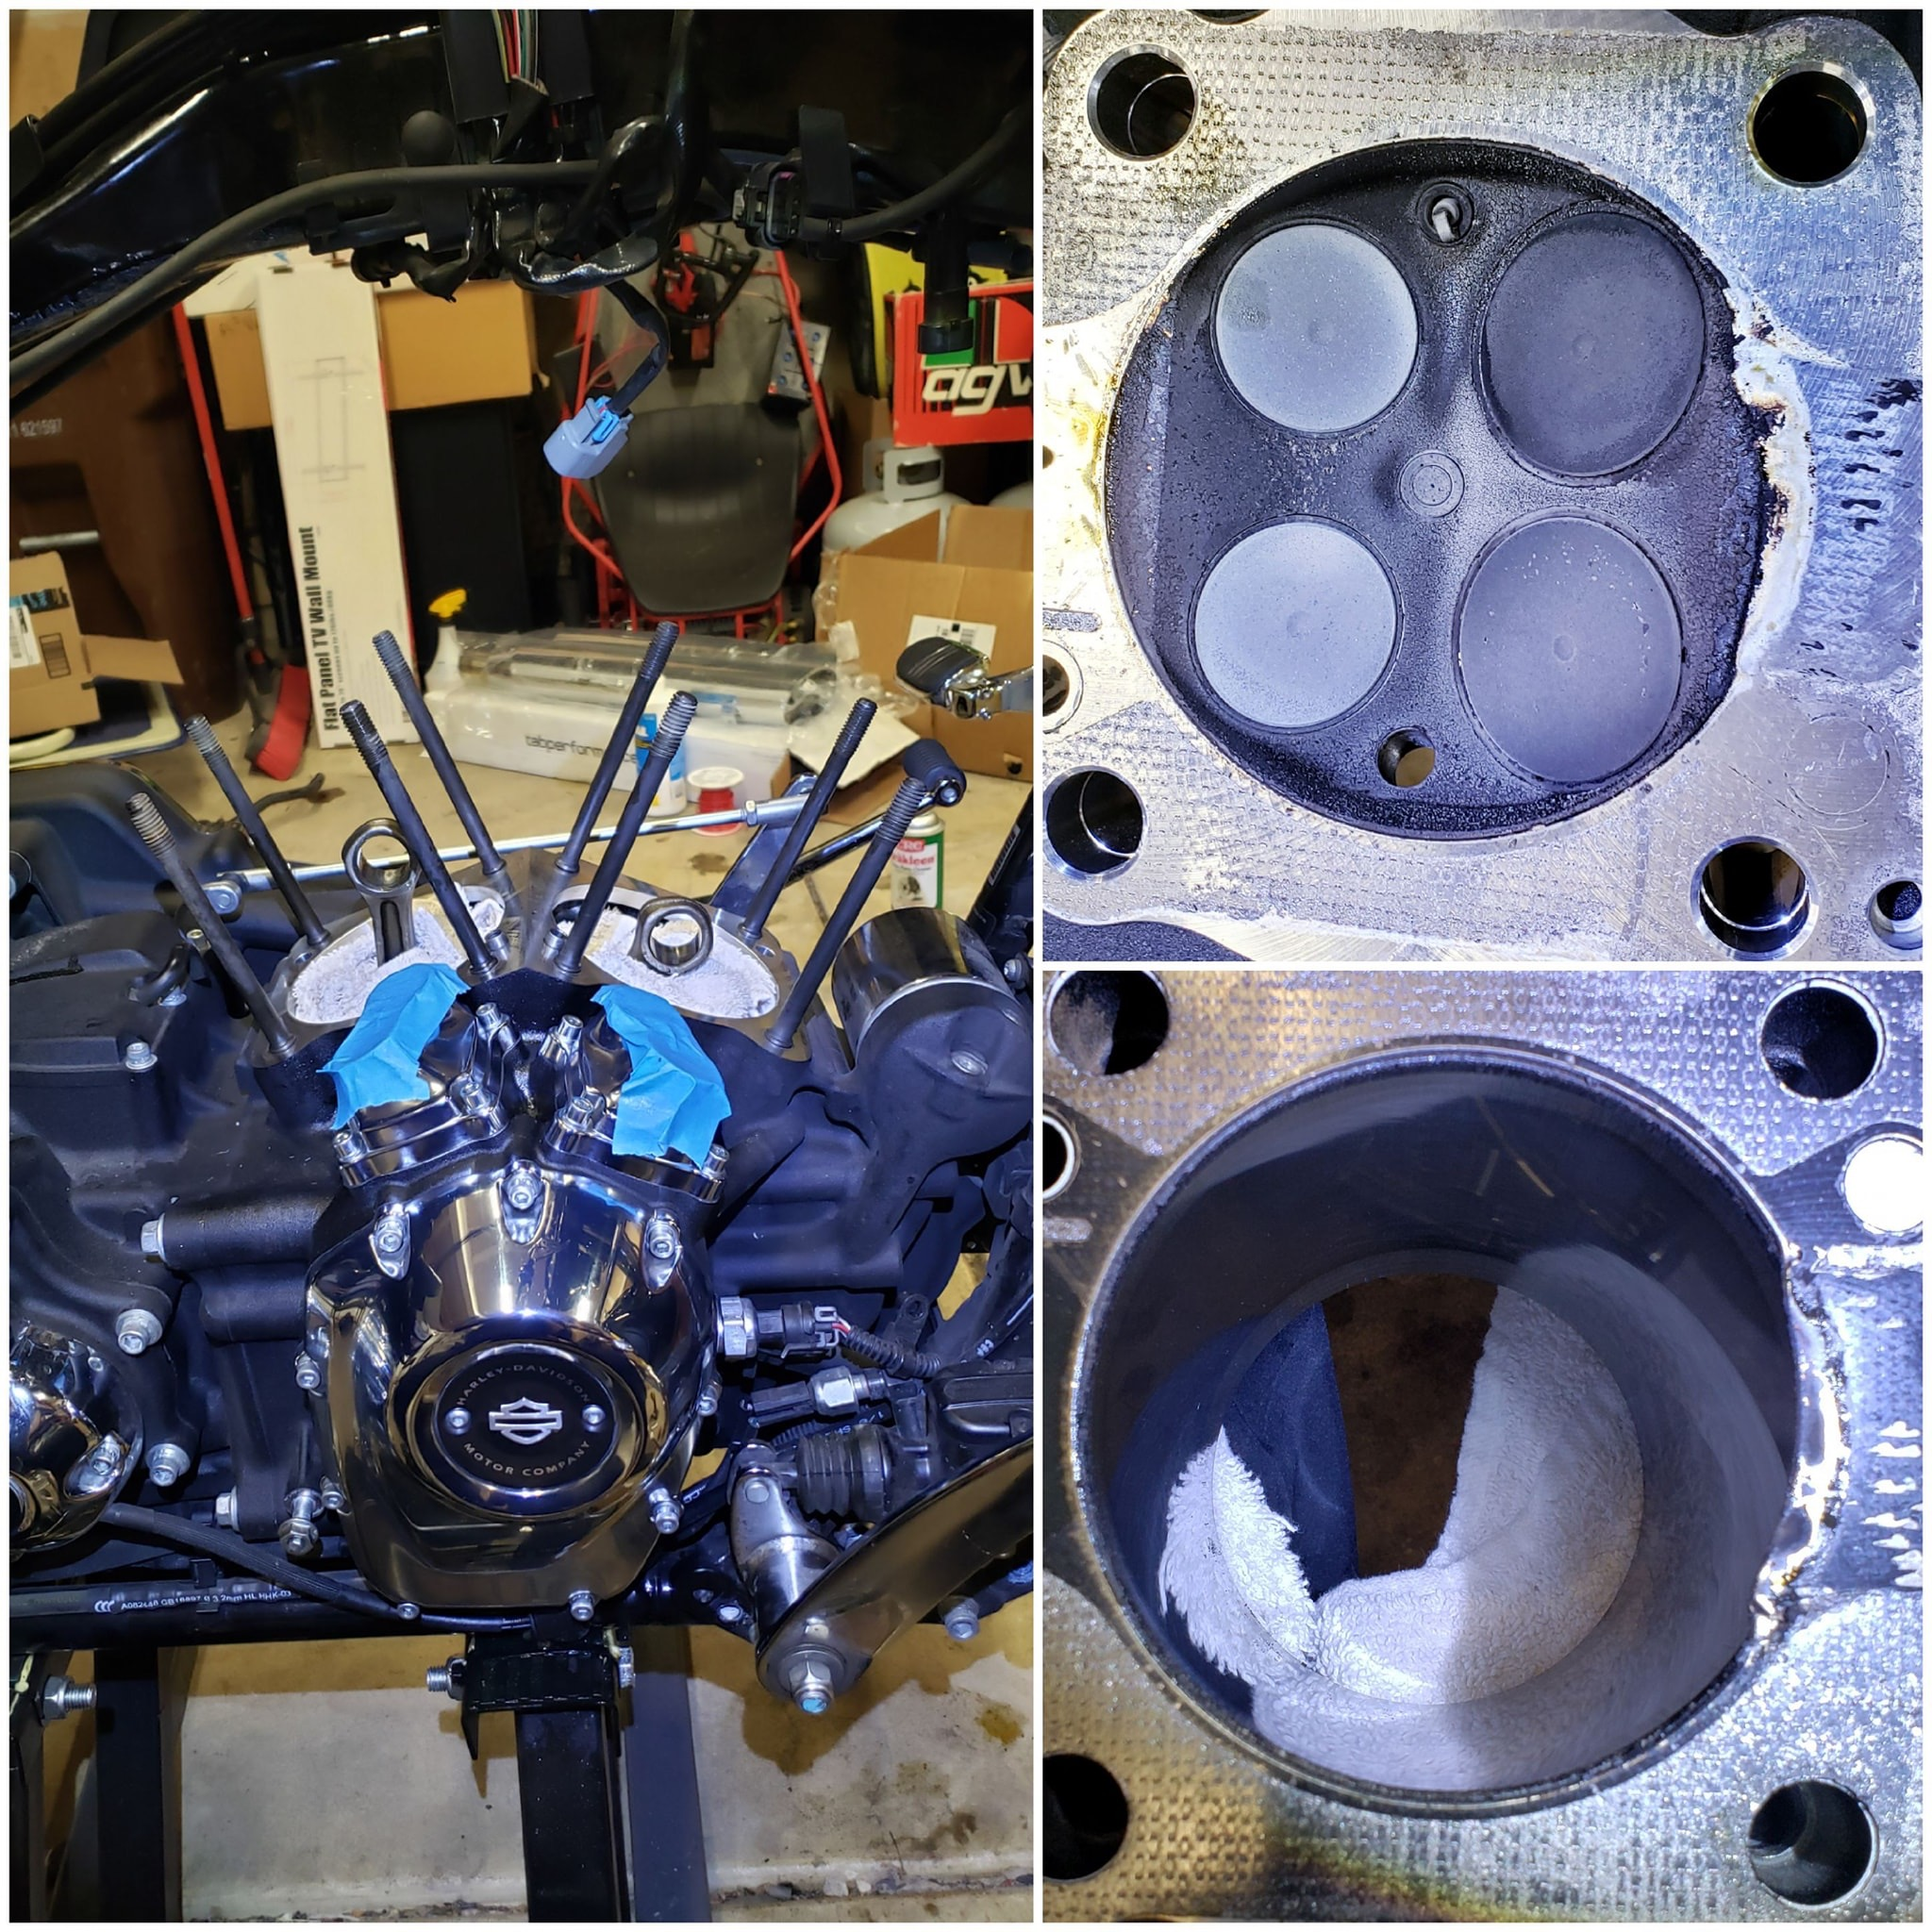 Harley's new 114 engine | Page 2 | Indian Motorcycle Forum